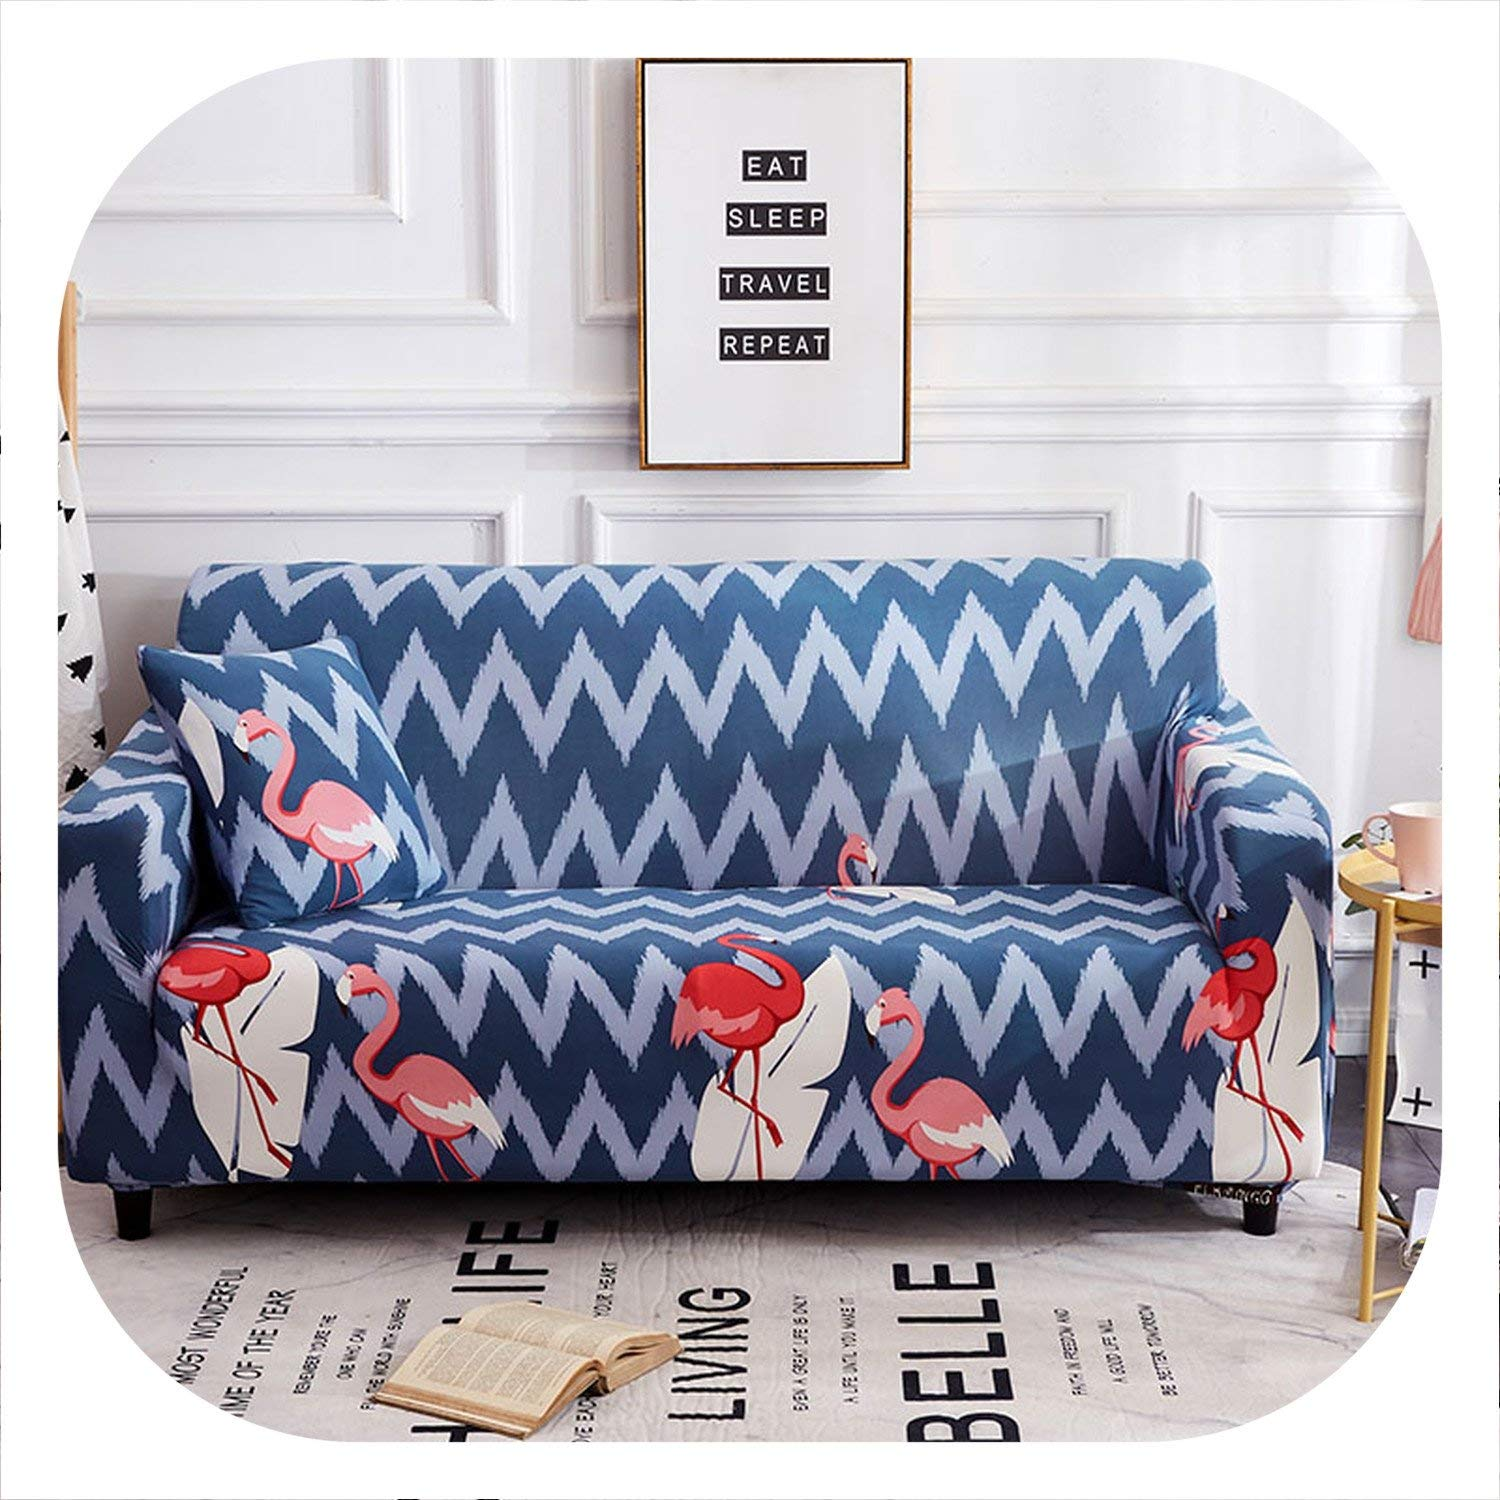 Fabulous Amazon Com Goods Store All Inclusive Sofa Cover European Unemploymentrelief Wooden Chair Designs For Living Room Unemploymentrelieforg